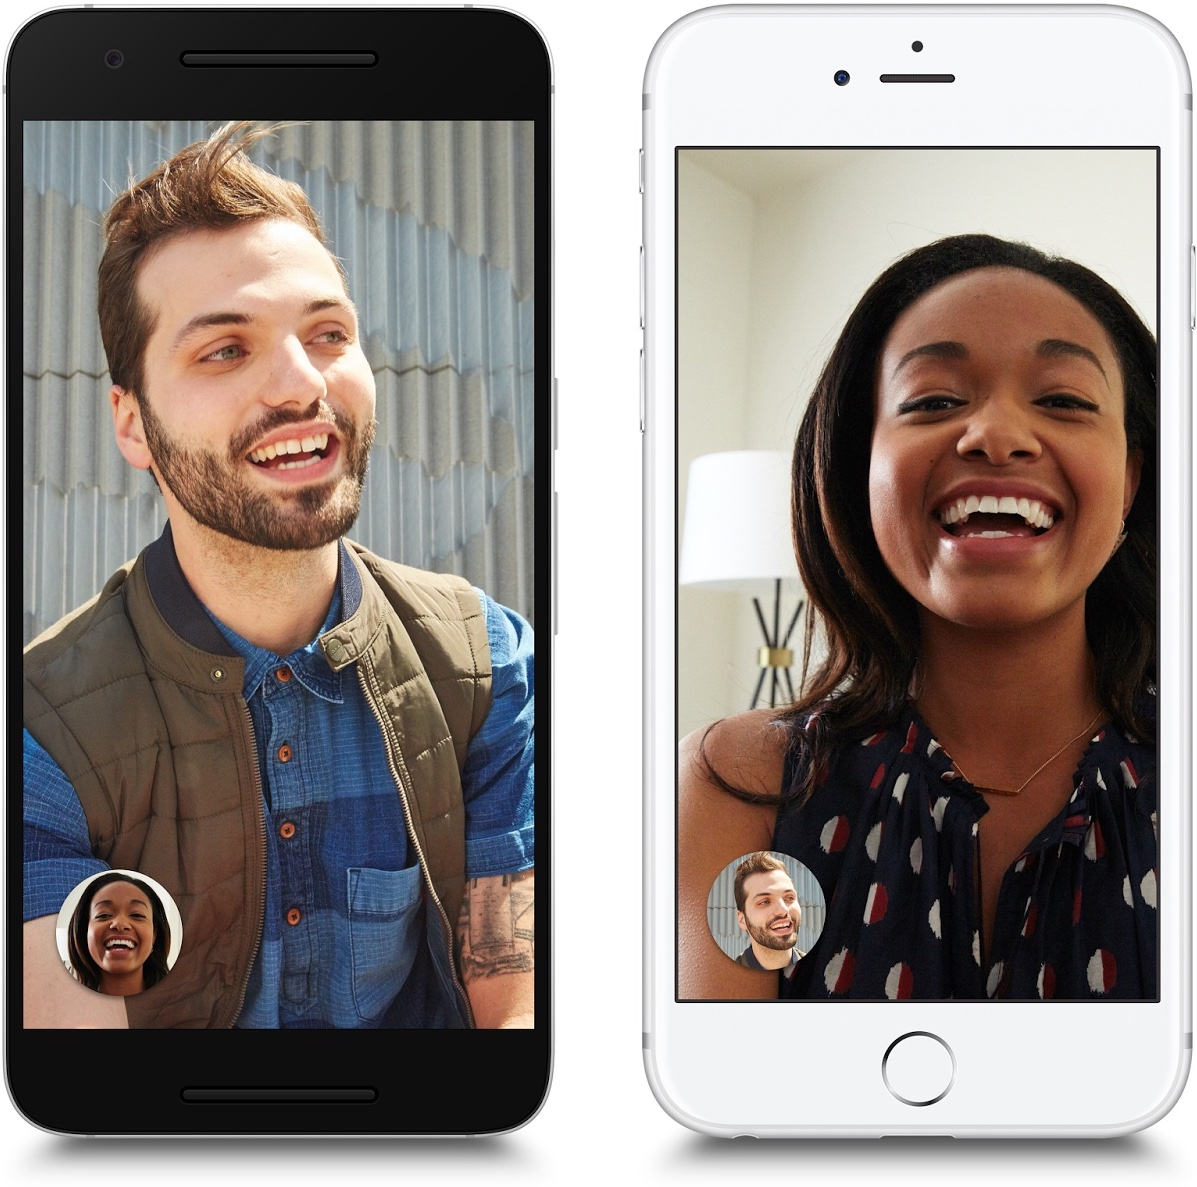 Google's Duo Video Chat App Links iOS and Android - TidBITS